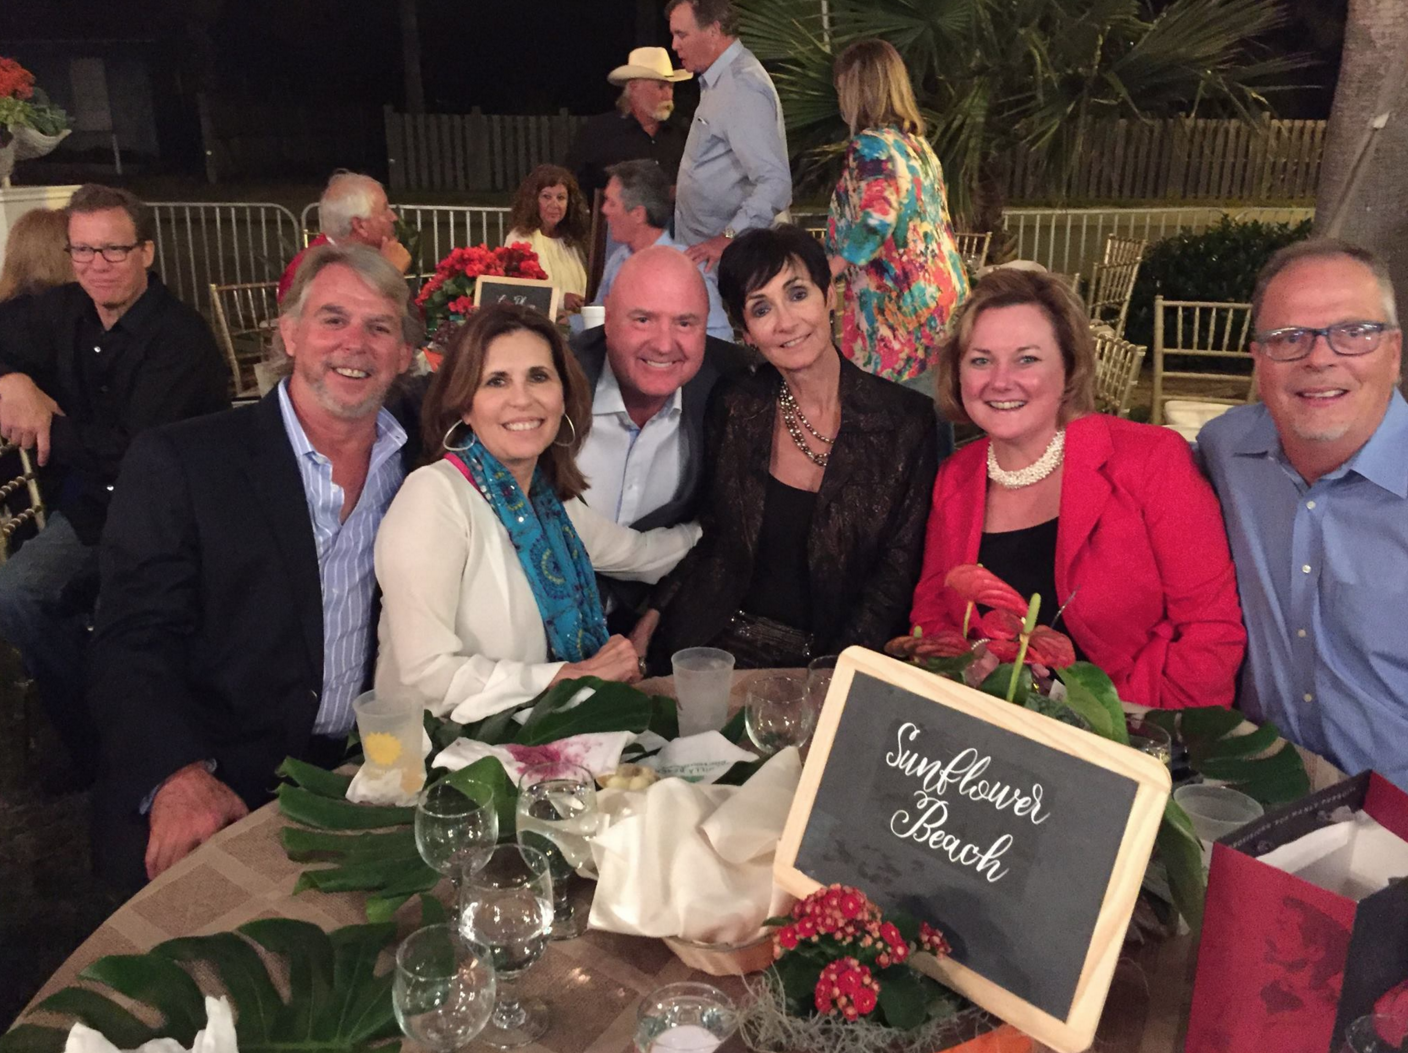 The Sunflower Beach Table at the PAPHA event on March 5, 2016